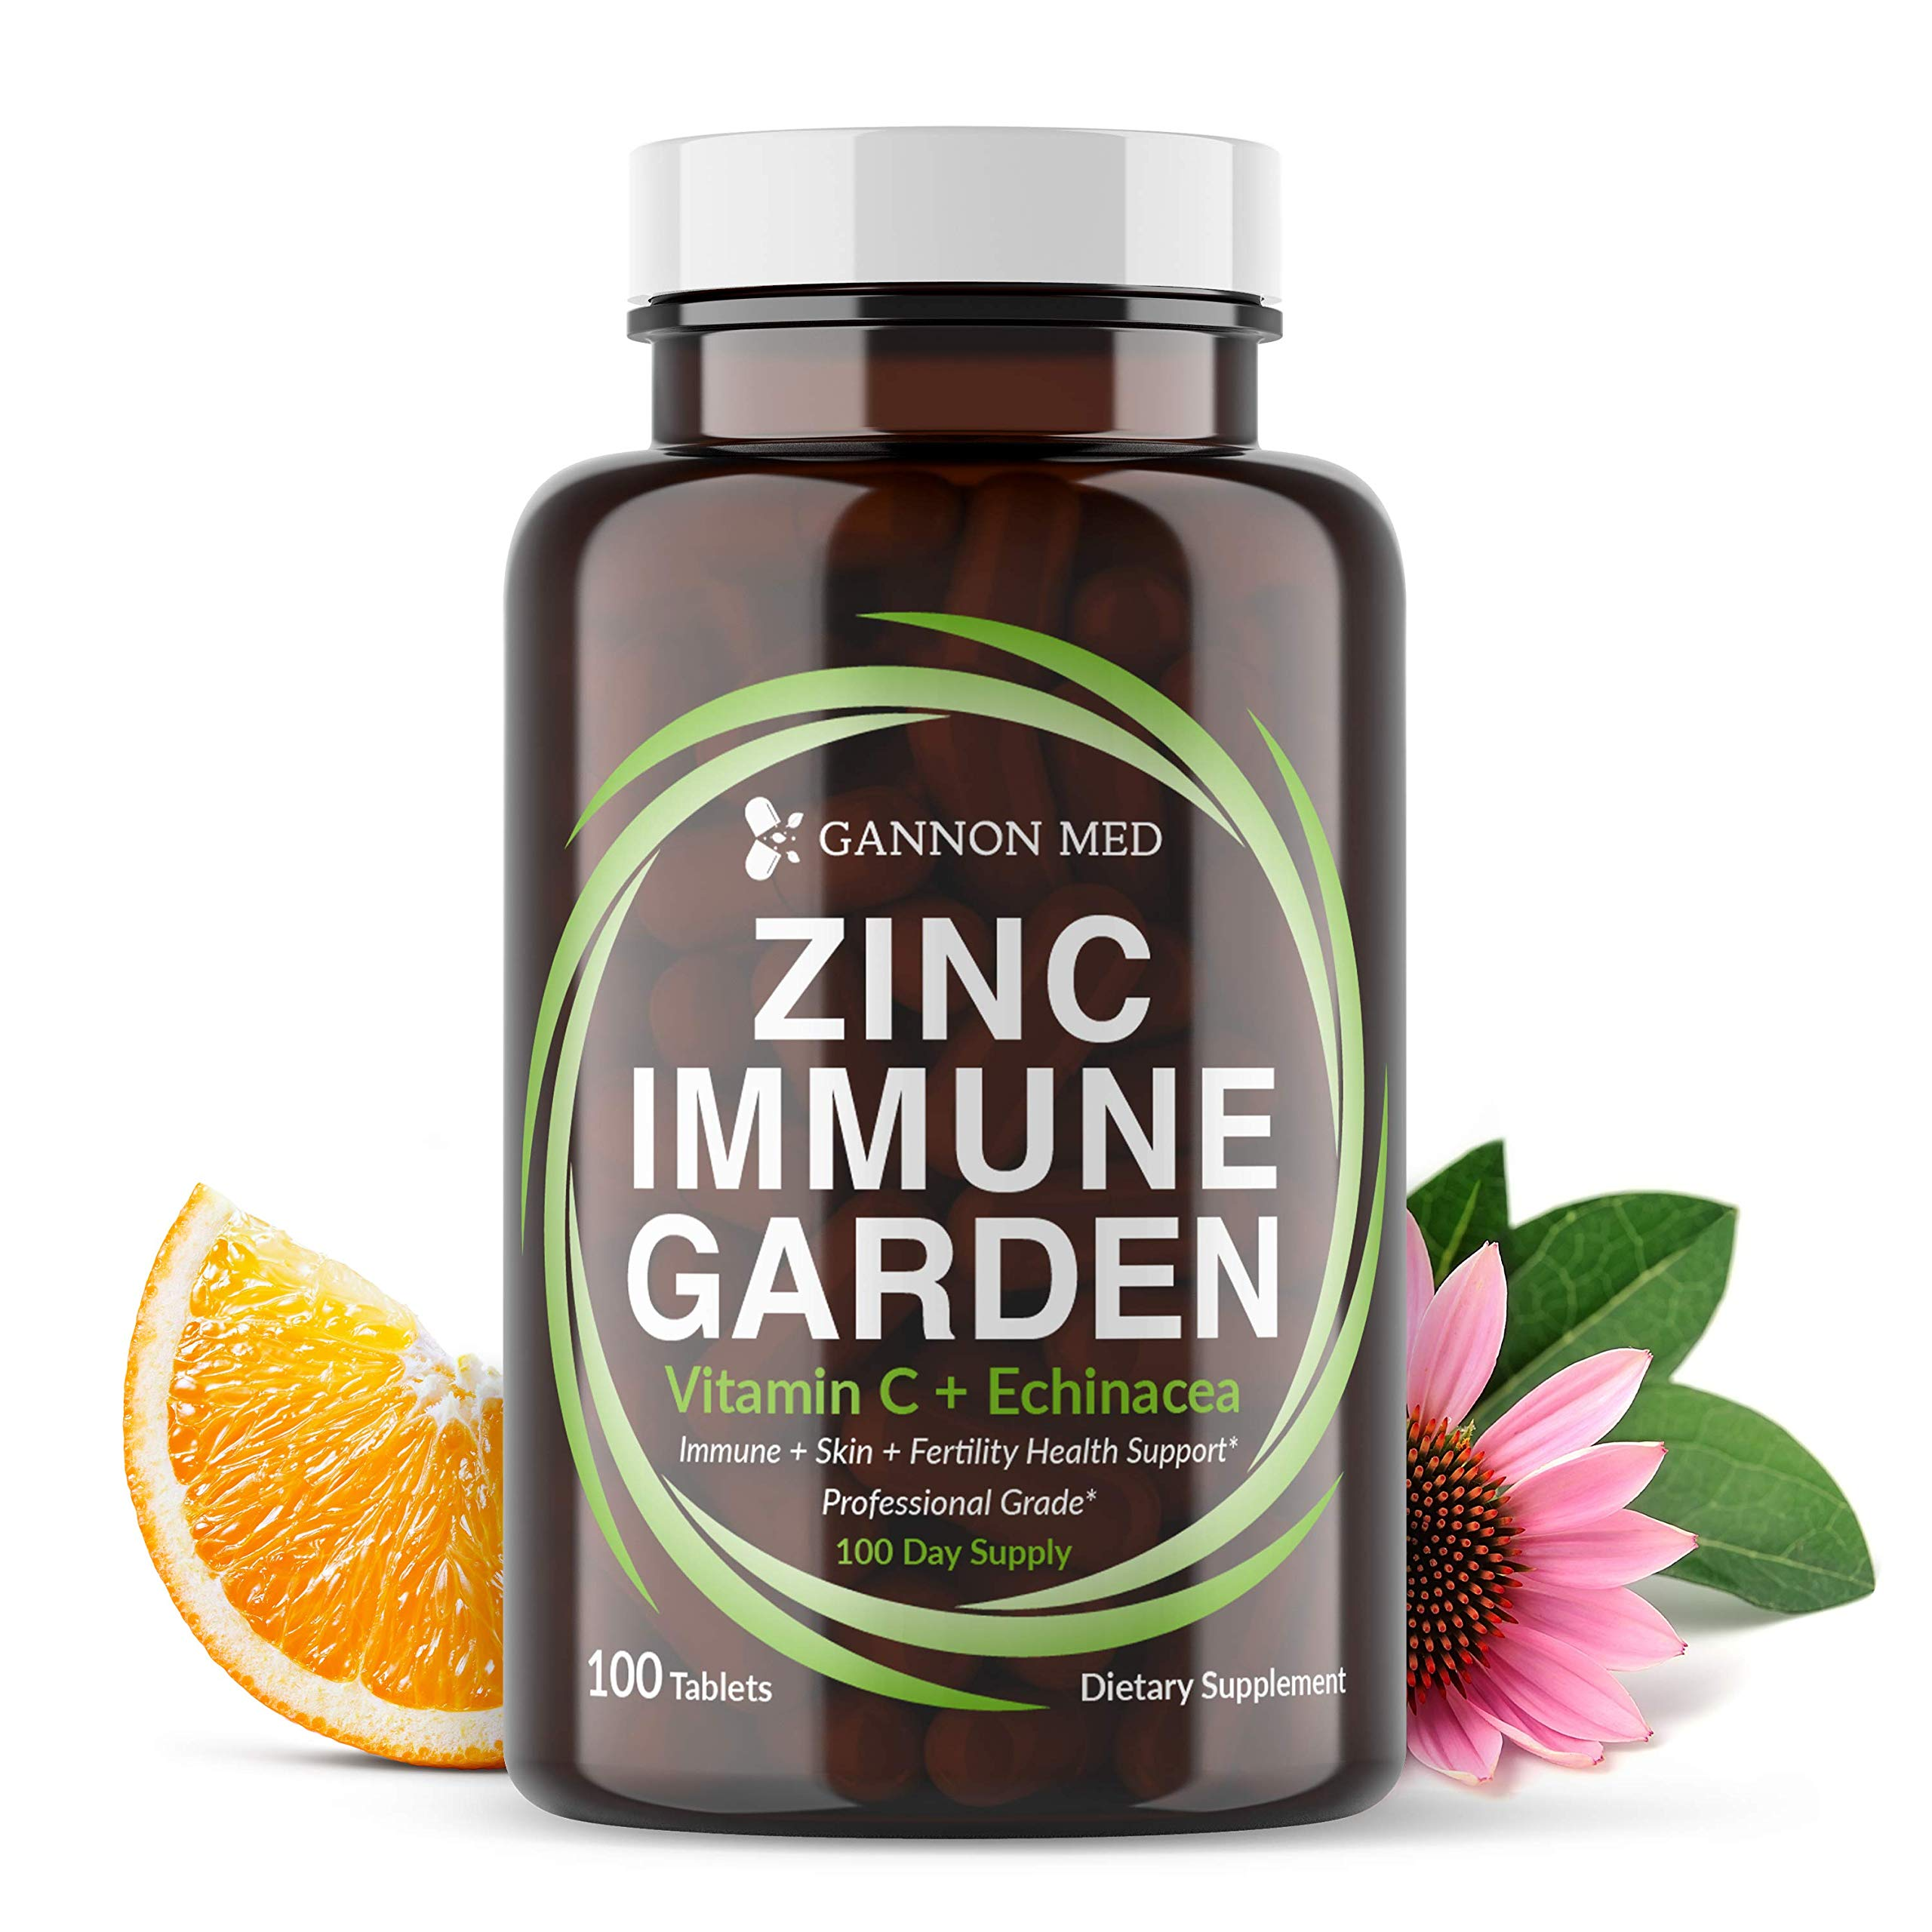 Zinc Immune Garden - Chelated Zinc AAC 50mg - Vitamin C 800mg - Echinacea 600mg per Tablet - 100 Day Supply - Immunity + Skin + Reproductive Health - Easy to Take, One a Day Immune Booster - Vegan